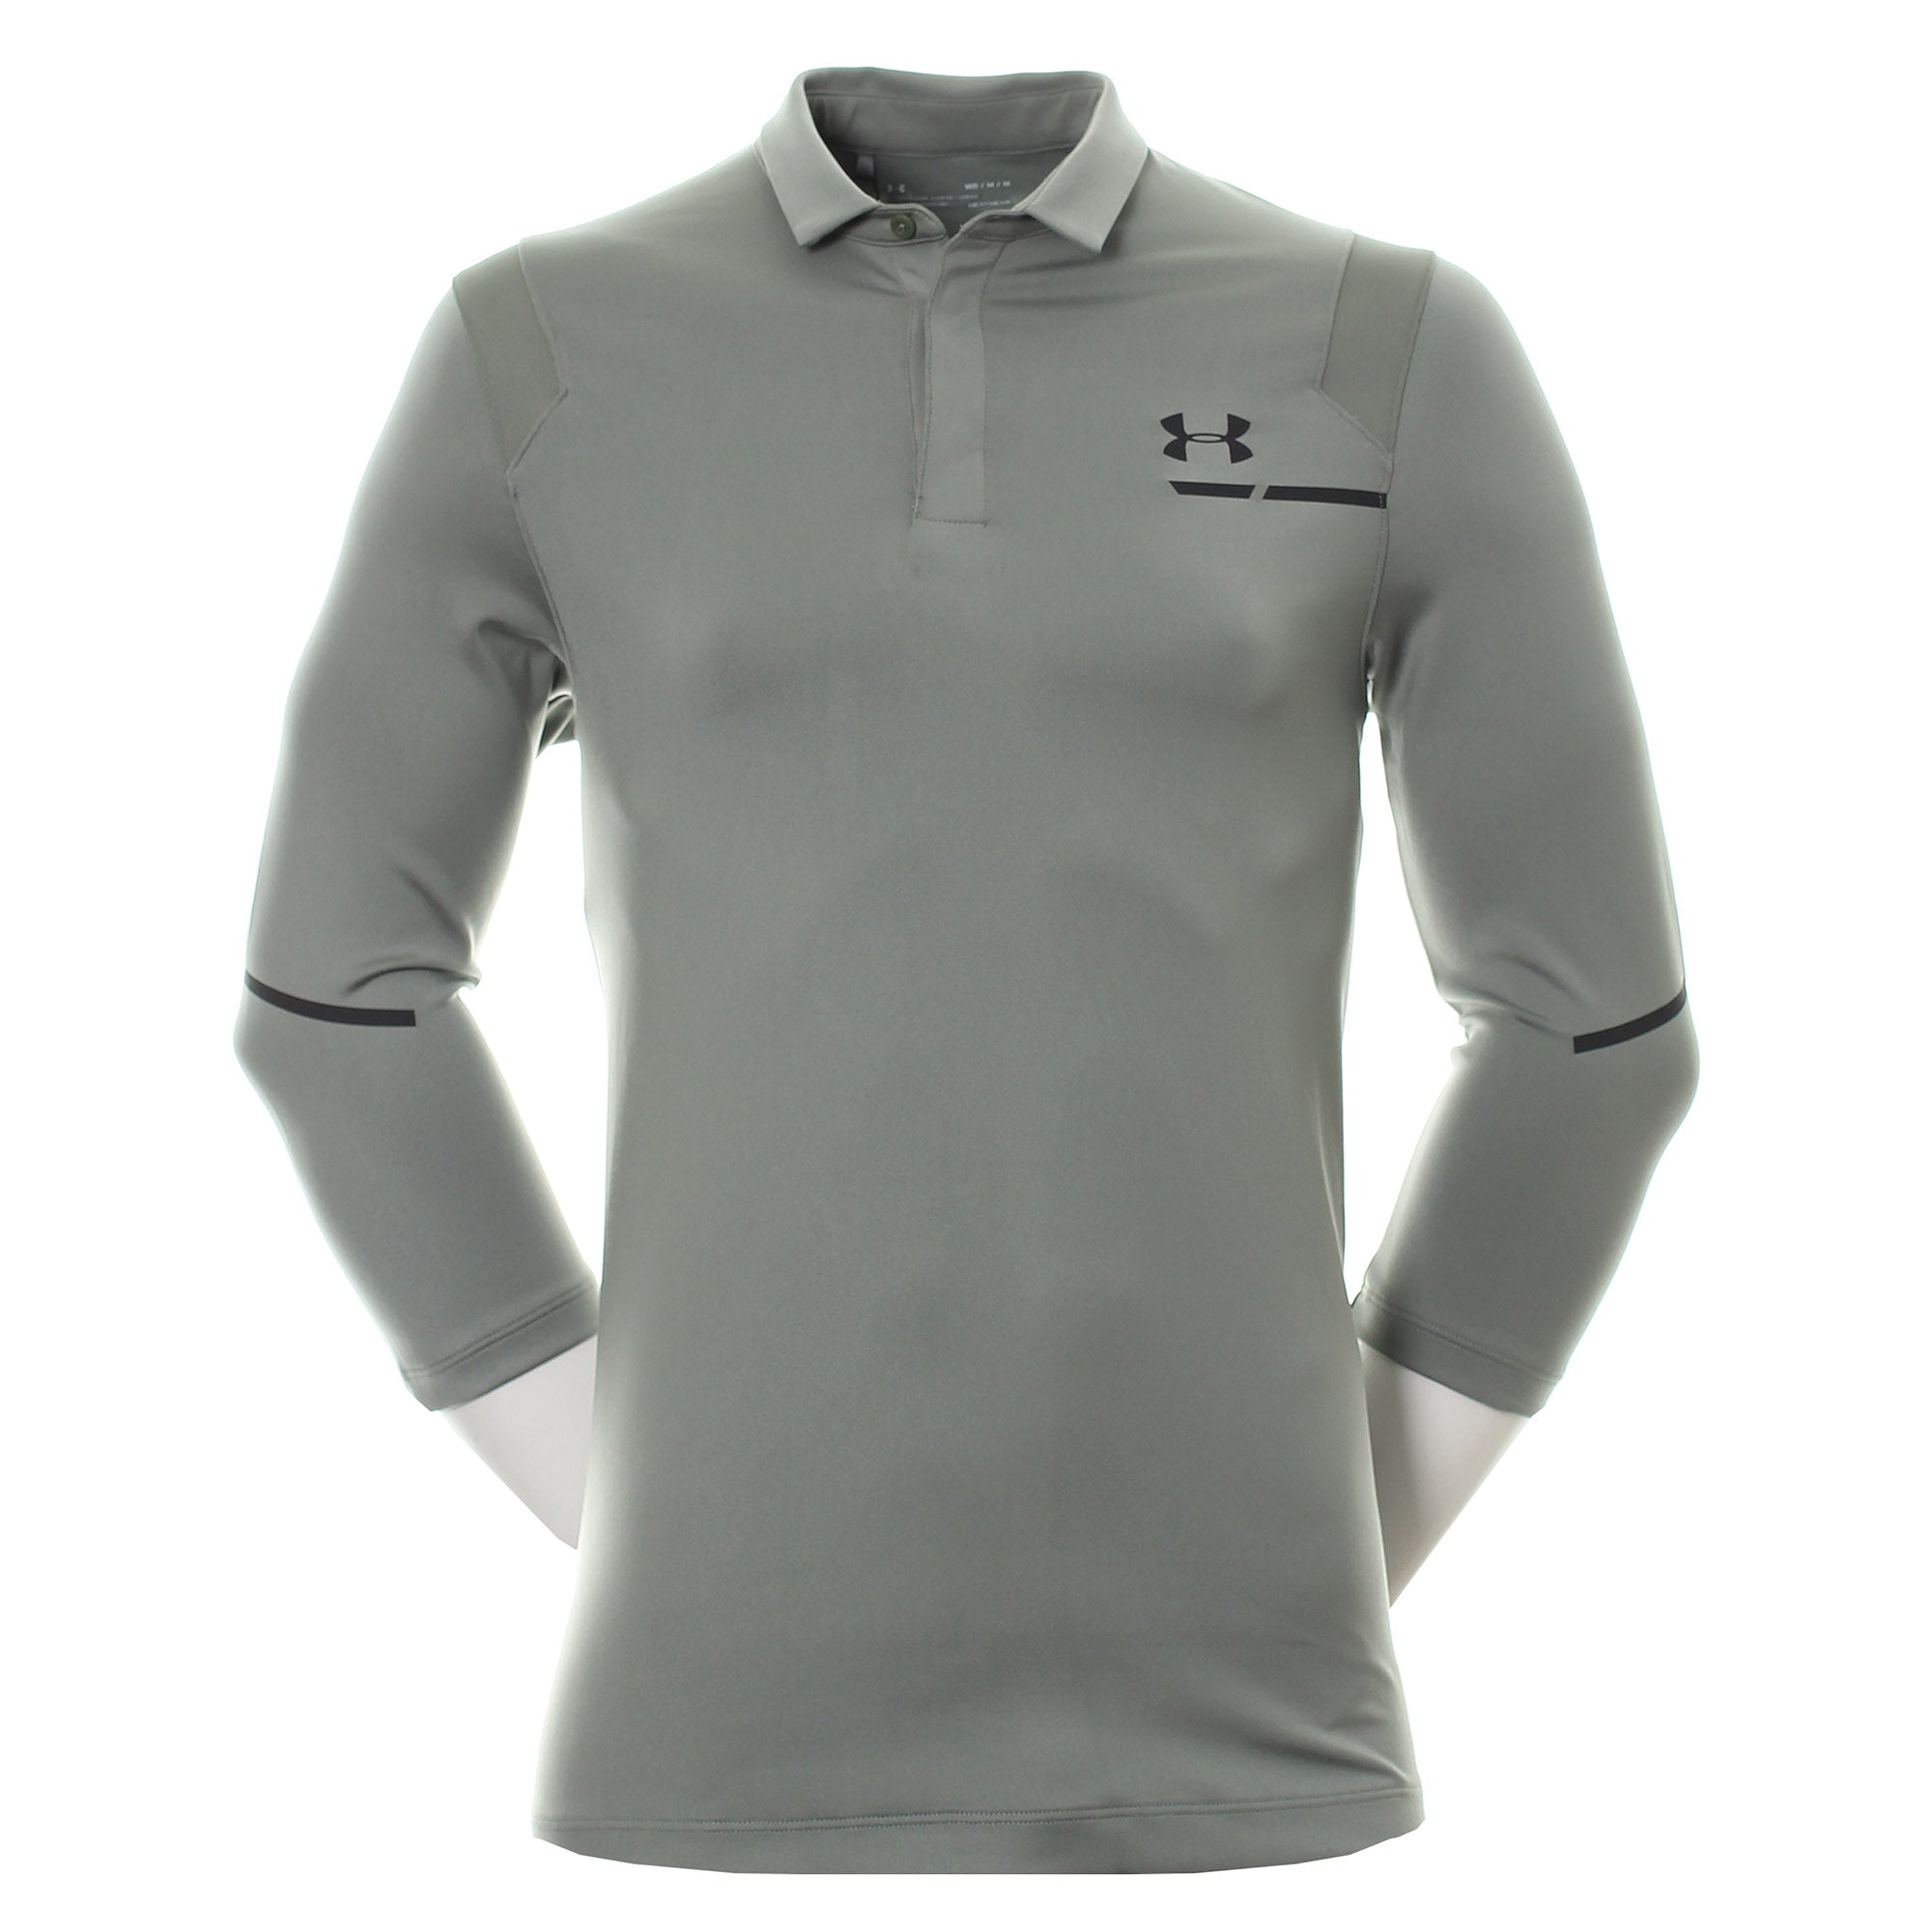 Under Armour Golf Perpetual Utility Shirt 1317336